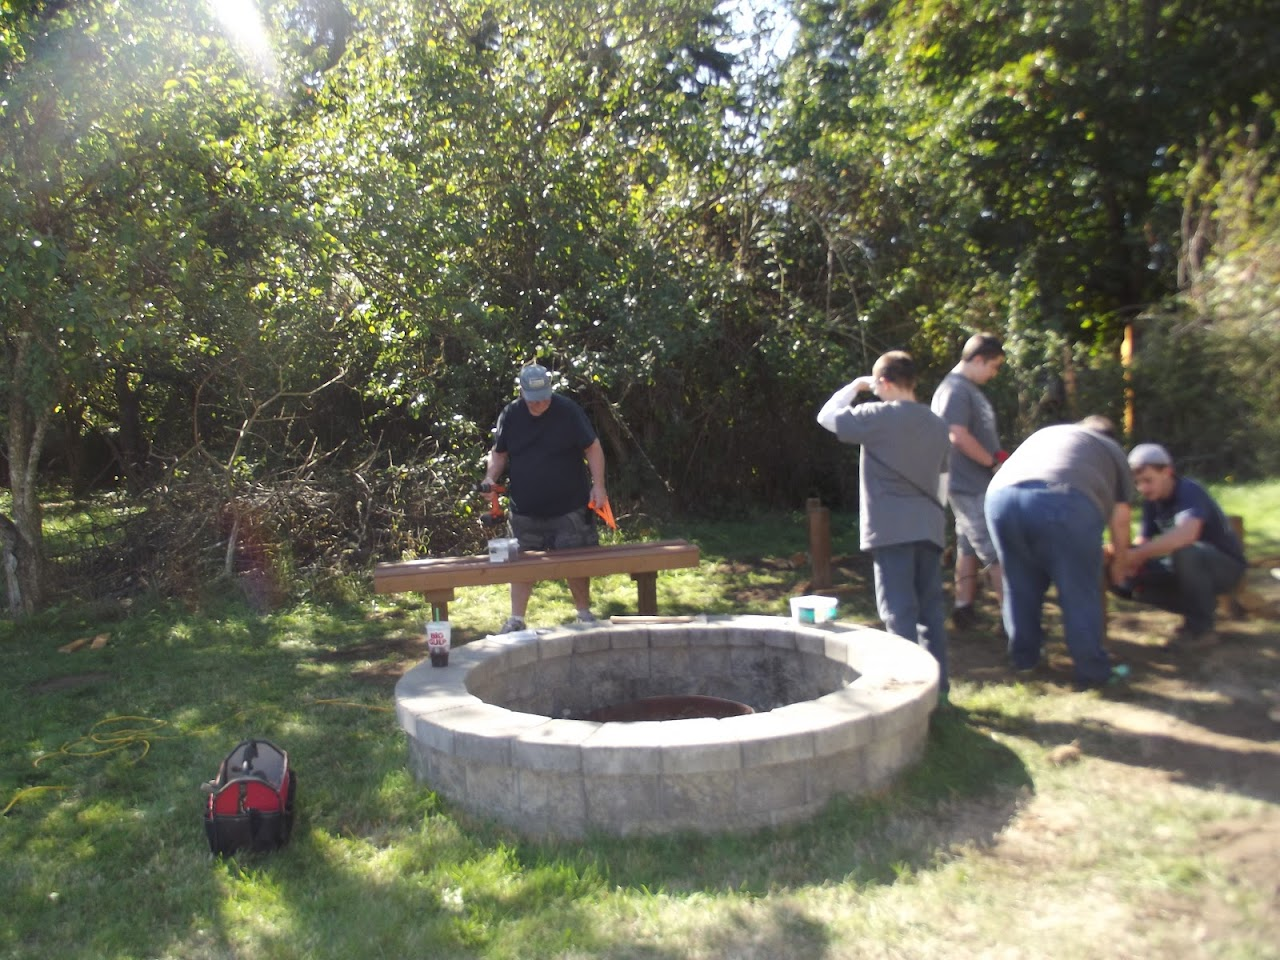 Carsons Eagle Project - October 2015 - DSCF3837.JPG